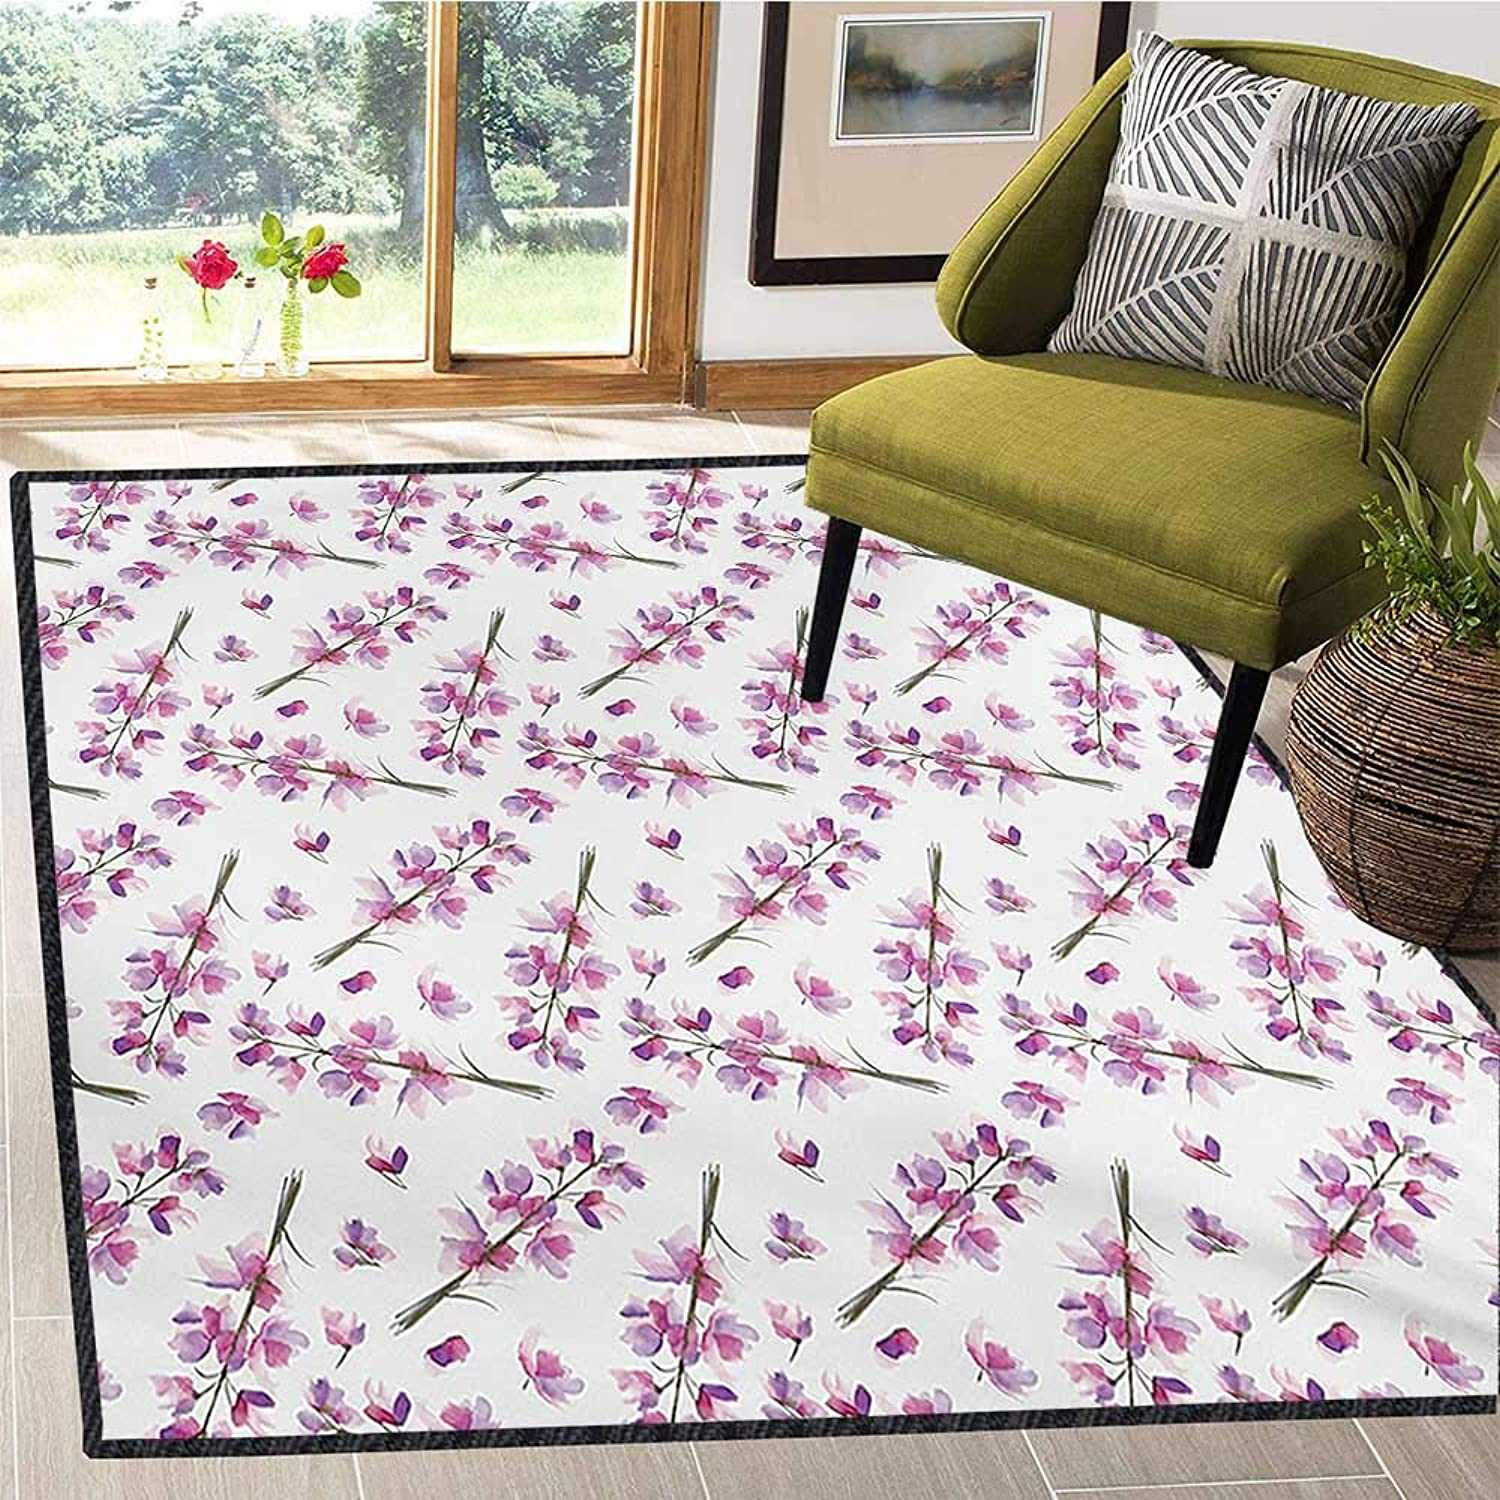 Purple, Door Mats for Inside, Hazy Delphinium Floret Branches with Blooming Roots Seasonal Twigs Nature Pattern, Floor Mat Pattern 5x6 Ft purple Green